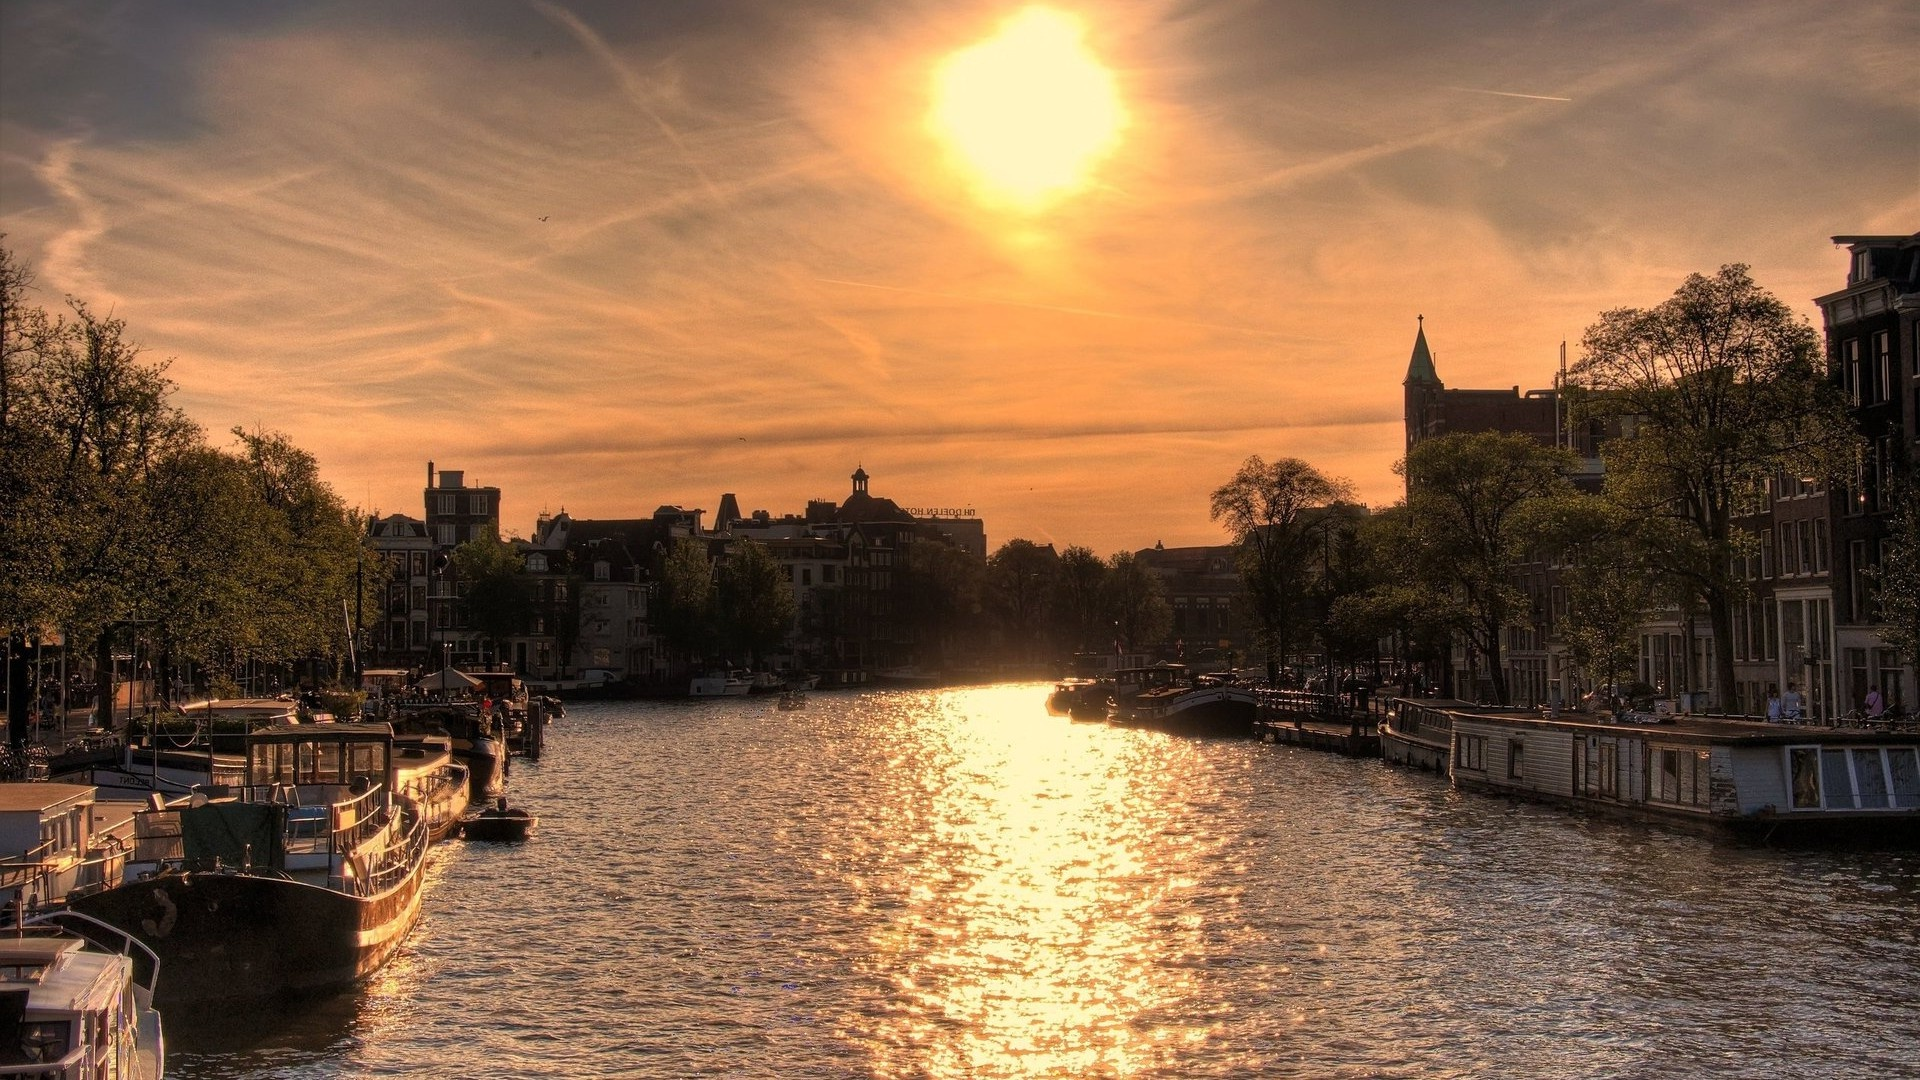 Summer Desktop Wallpaper Hd Amsterdam Backgrounds Free Download Pixelstalk Net